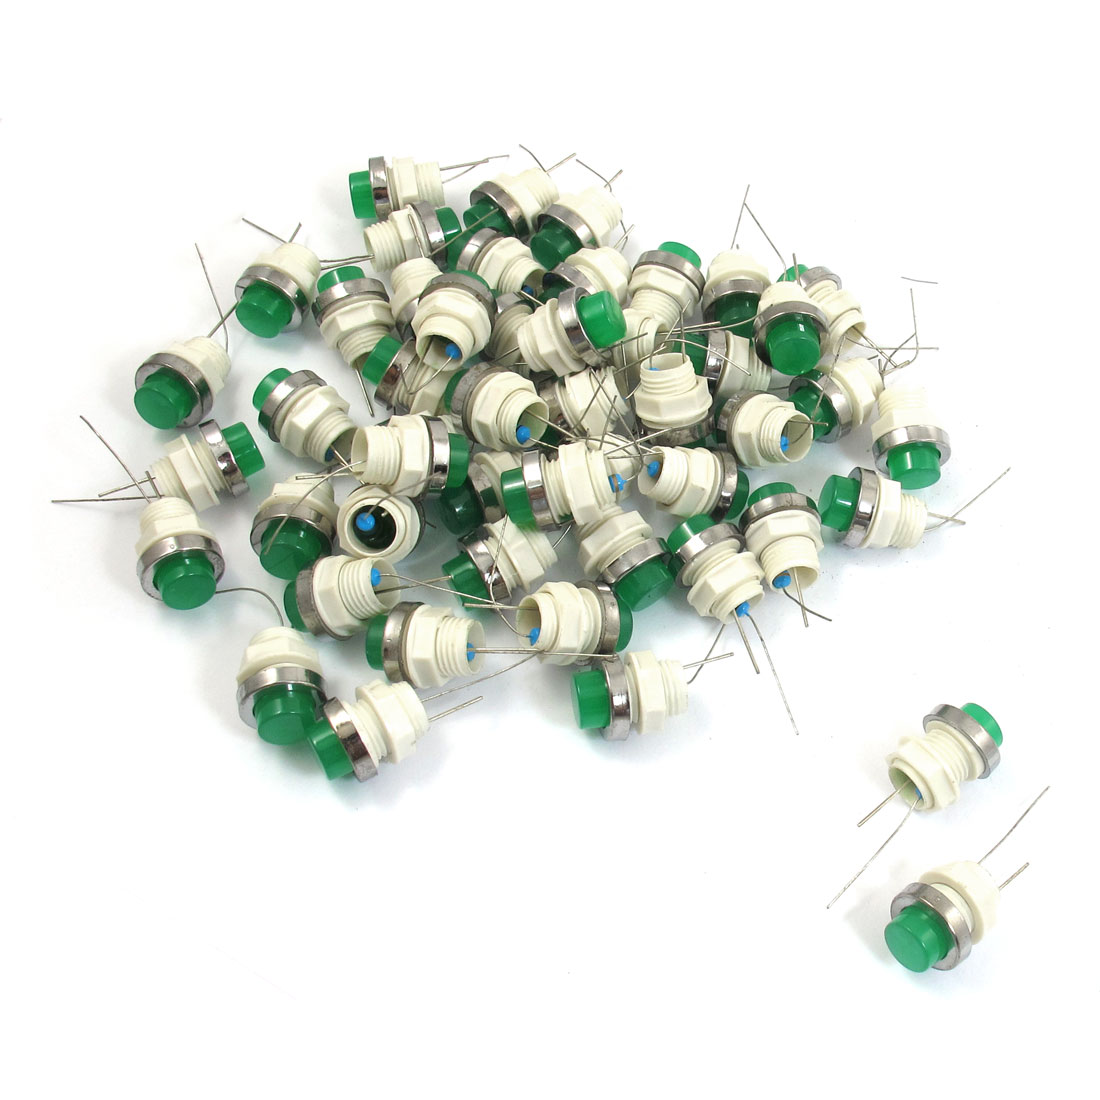 50 Pcs 10mm Threaded 24VDC Green LED Lamp Indicator Pilot Light AD11-10/21